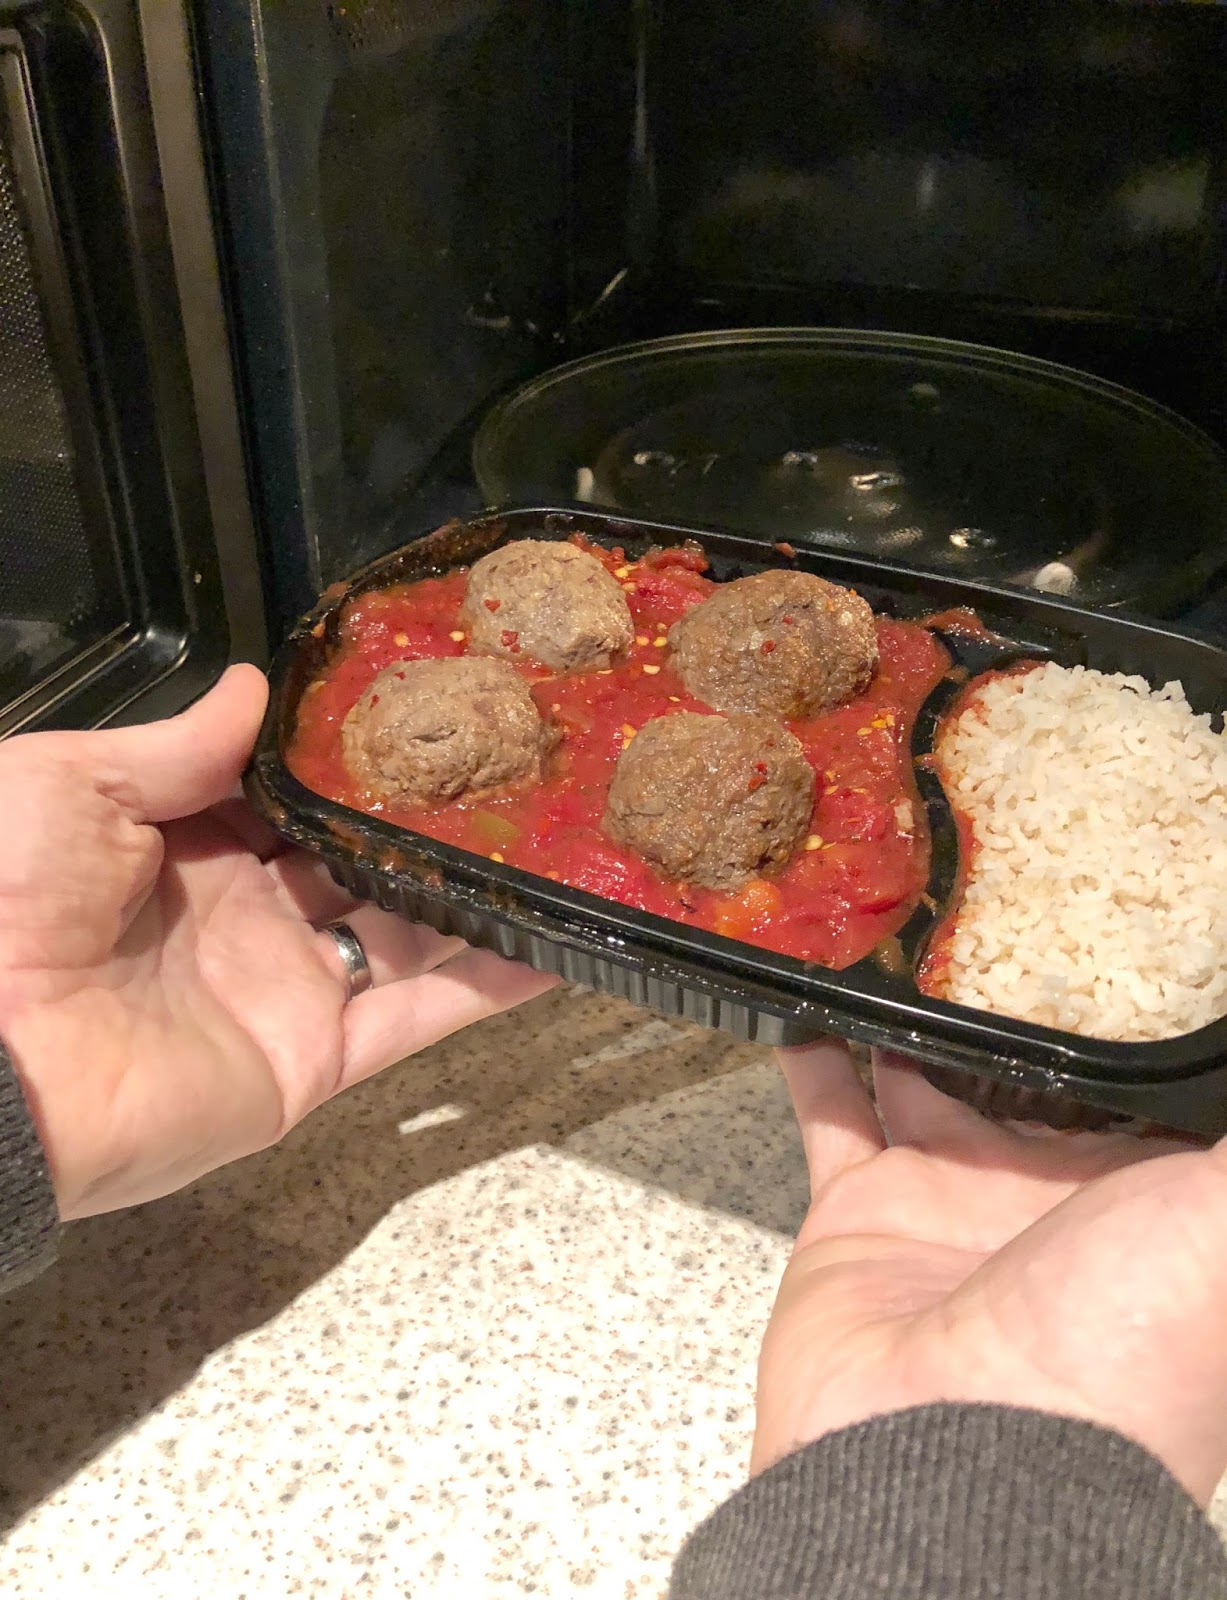 Guilt Free Takeaways - Guilt Free Kitchen, South Shields - Meatballs